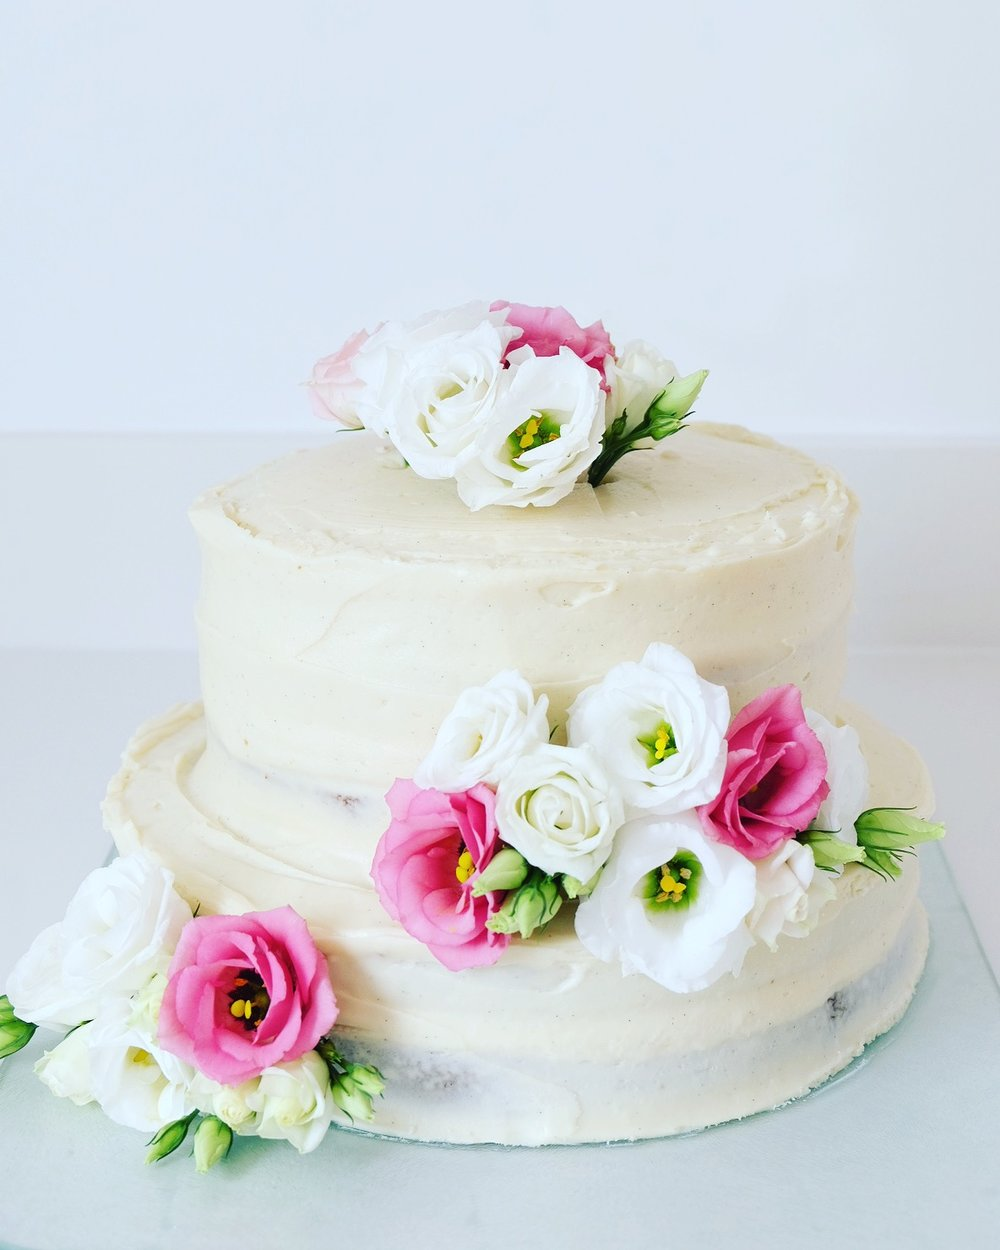 semi-naked carrot cake decorated with fresh flowers